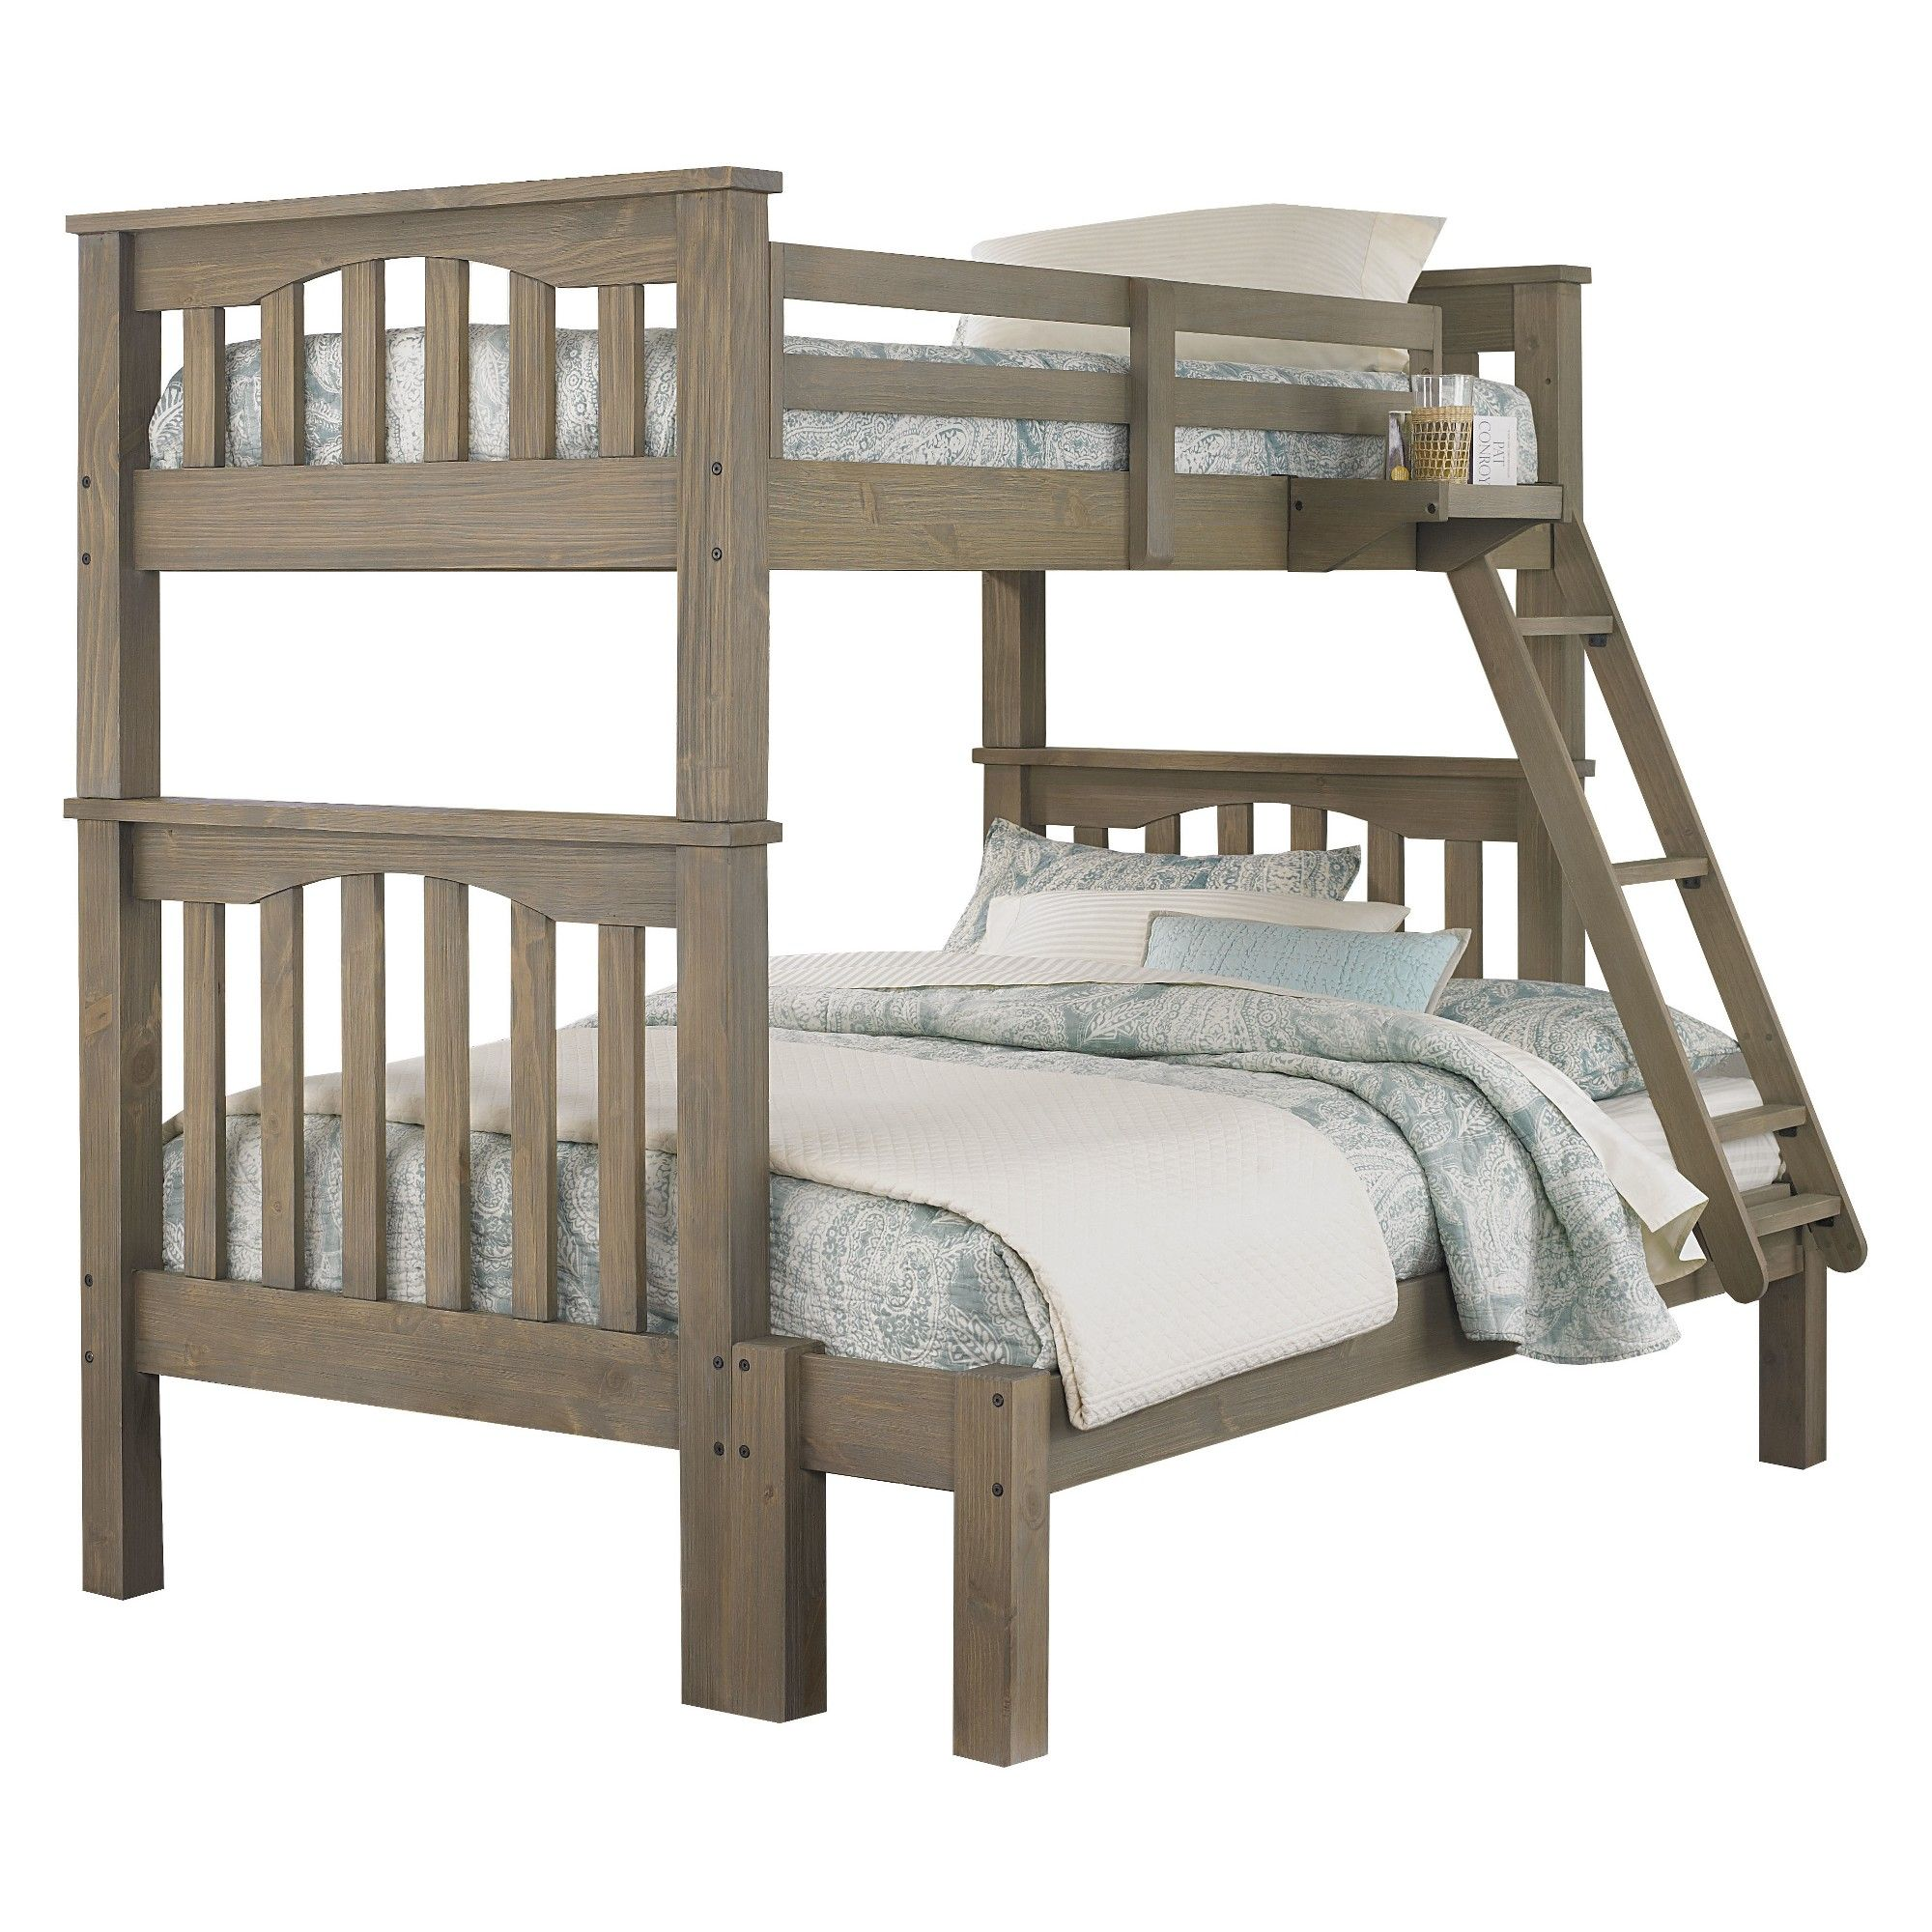 Twin over full loft bed with stairs  Twin Over Full Highlands Harper Bunk Bed with Storage Full